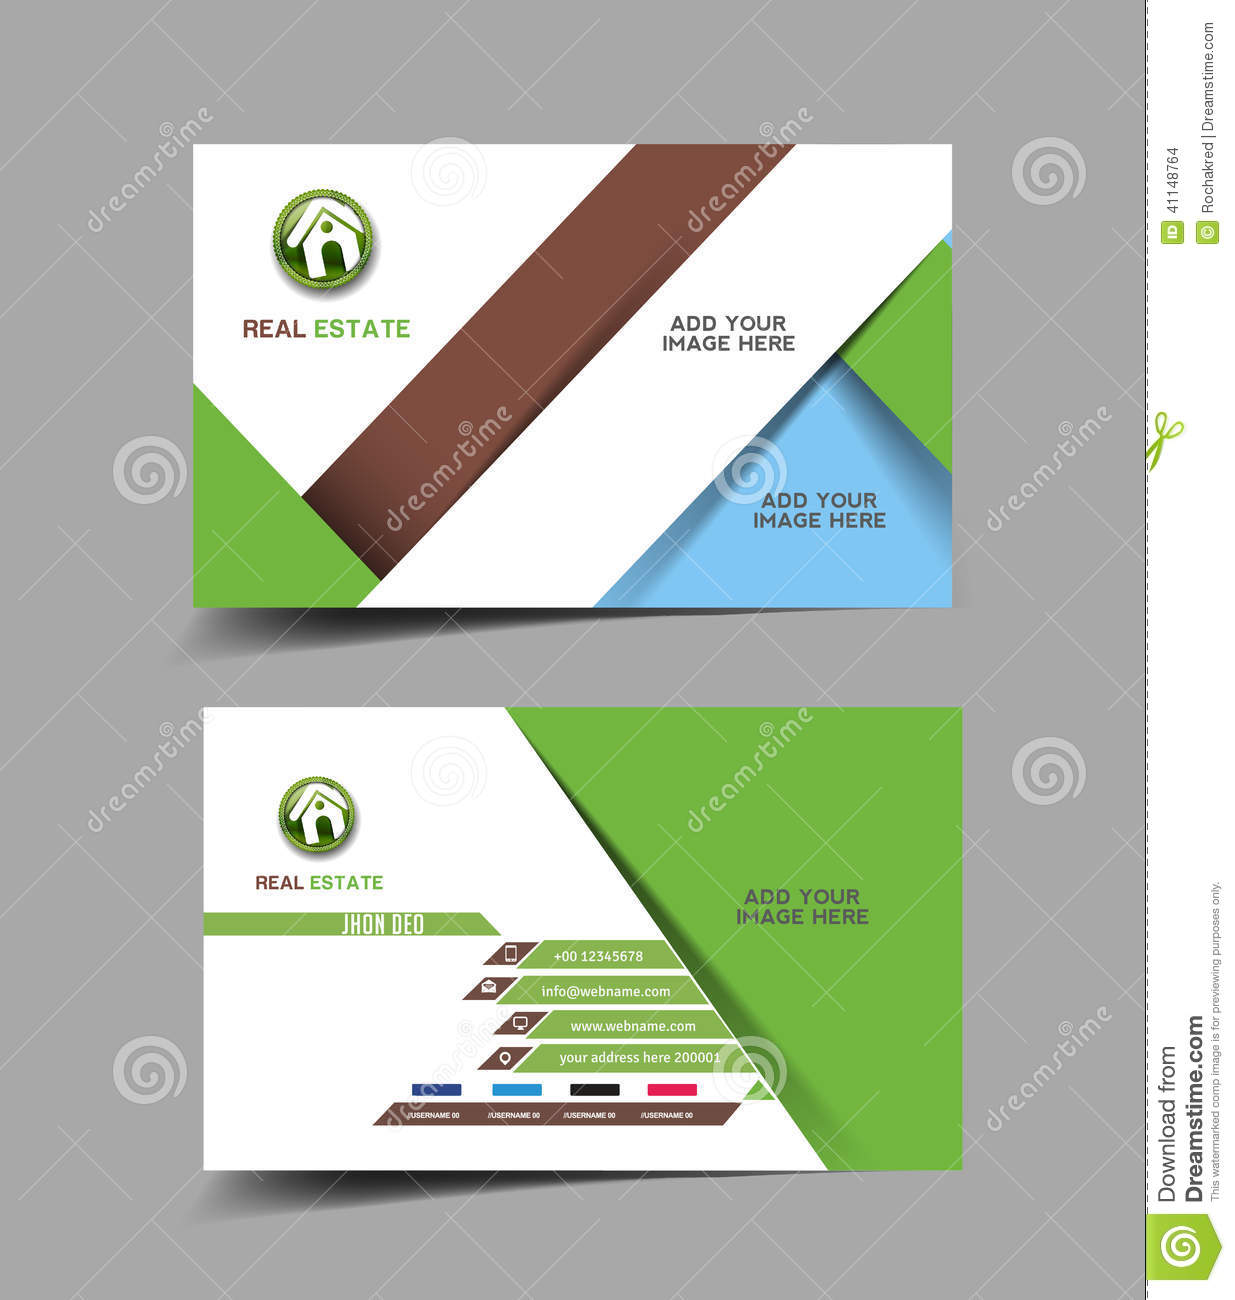 Real estate agent business card stock vector illustration of info download real estate agent business card stock vector illustration of info company 41148764 reheart Images